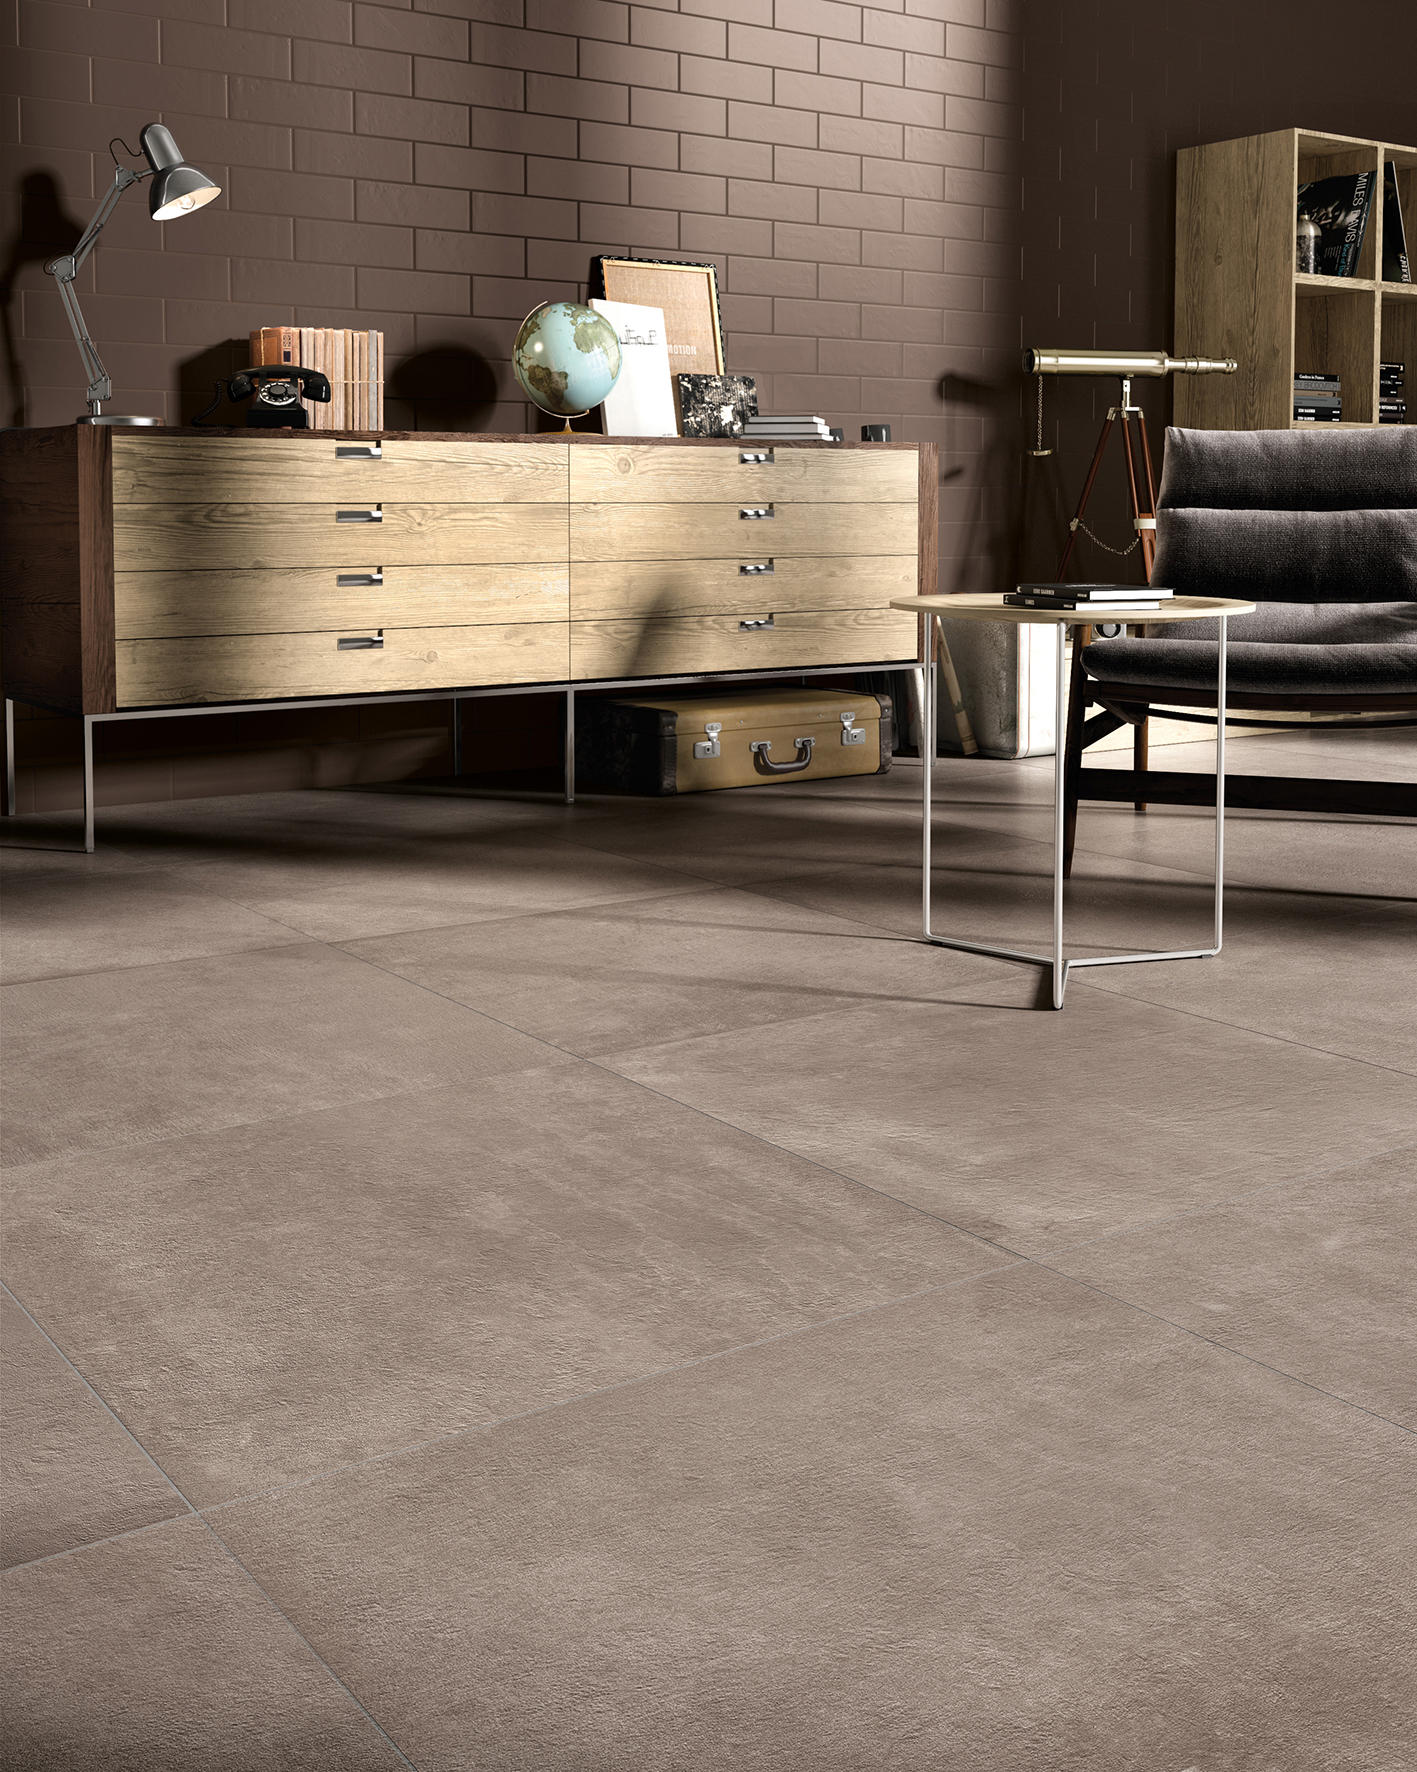 Carnaby Ivory Ceramic Tiles From Ceramiche Supergres